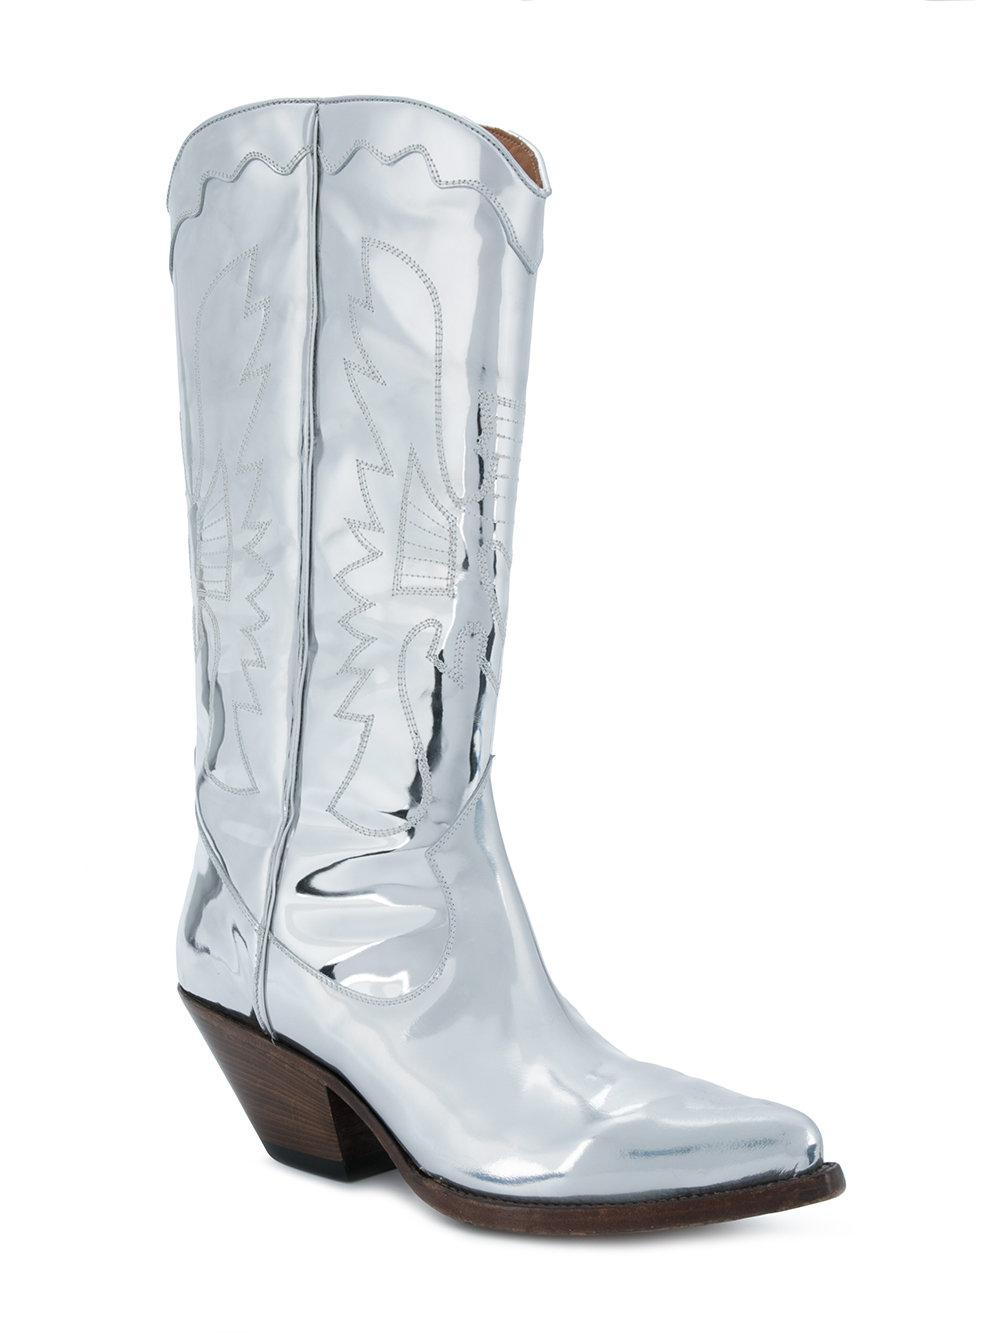 Buttero Elise mirrored western boots